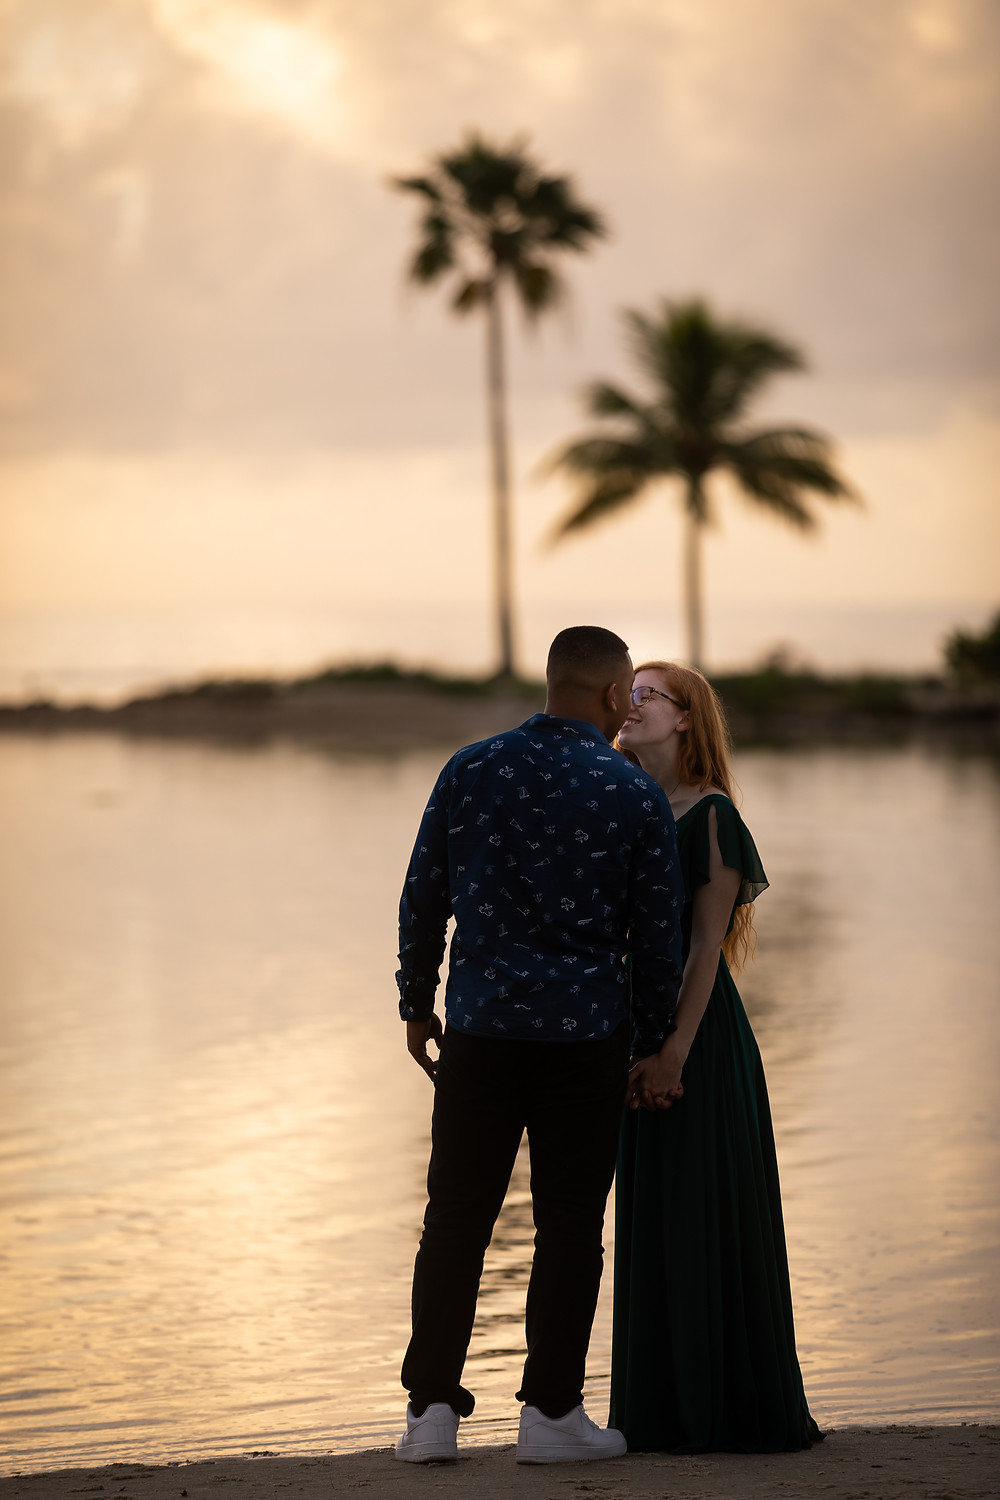 Miami wedding photographer captures image of couple kissing in the beach.